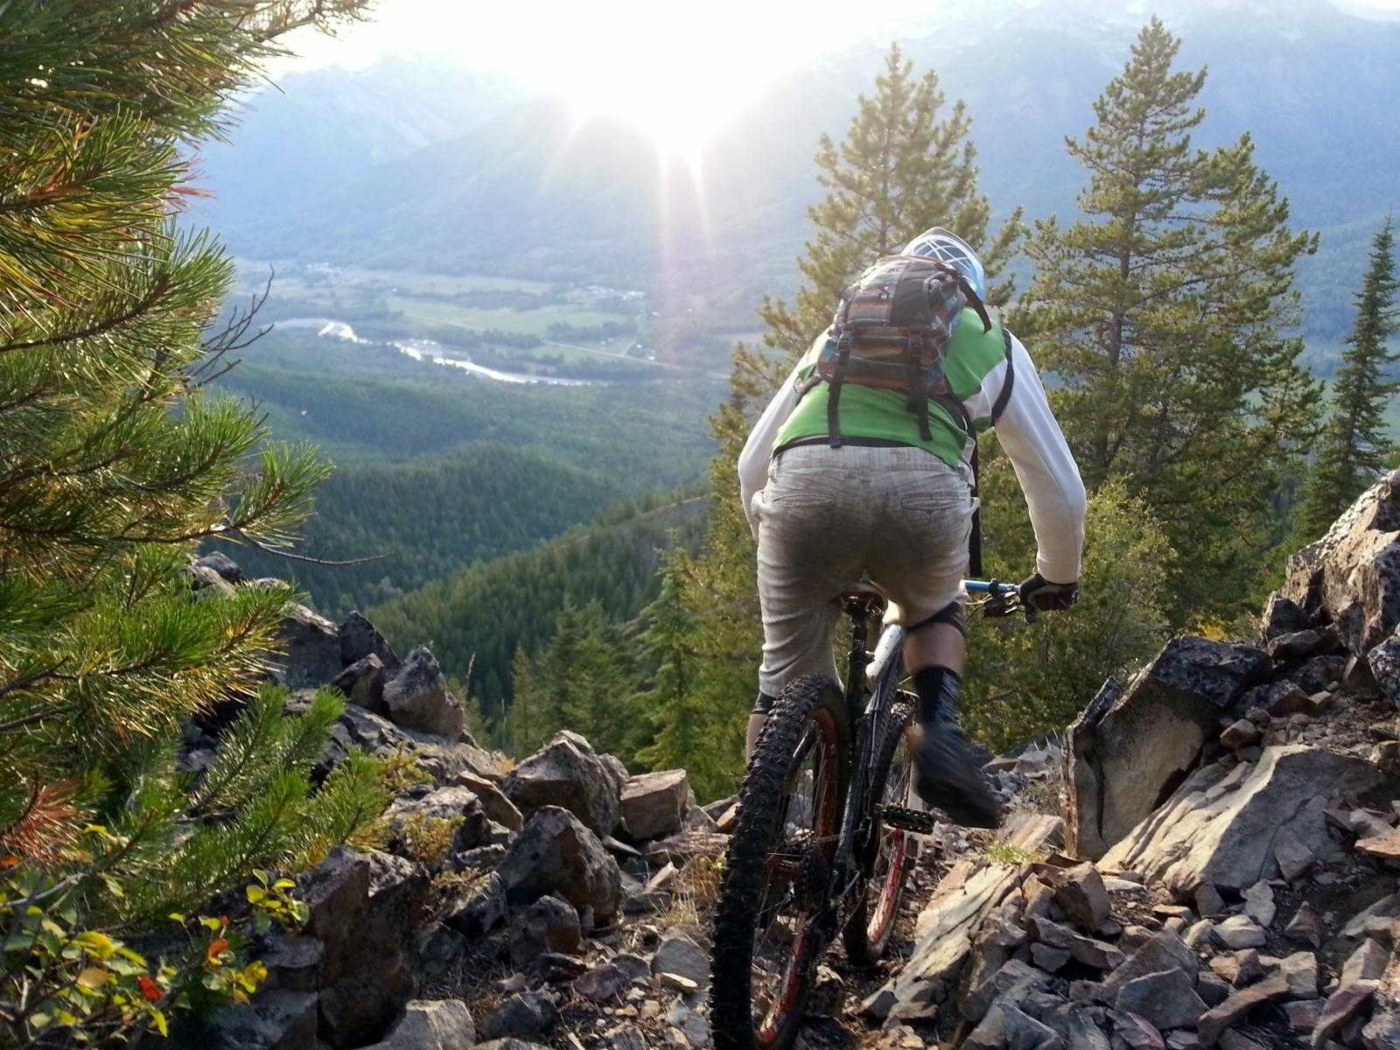 Mountain Biker riding away from camera on rocky trail at top of steep drop overlooking green mountain valley with bright sun overhead